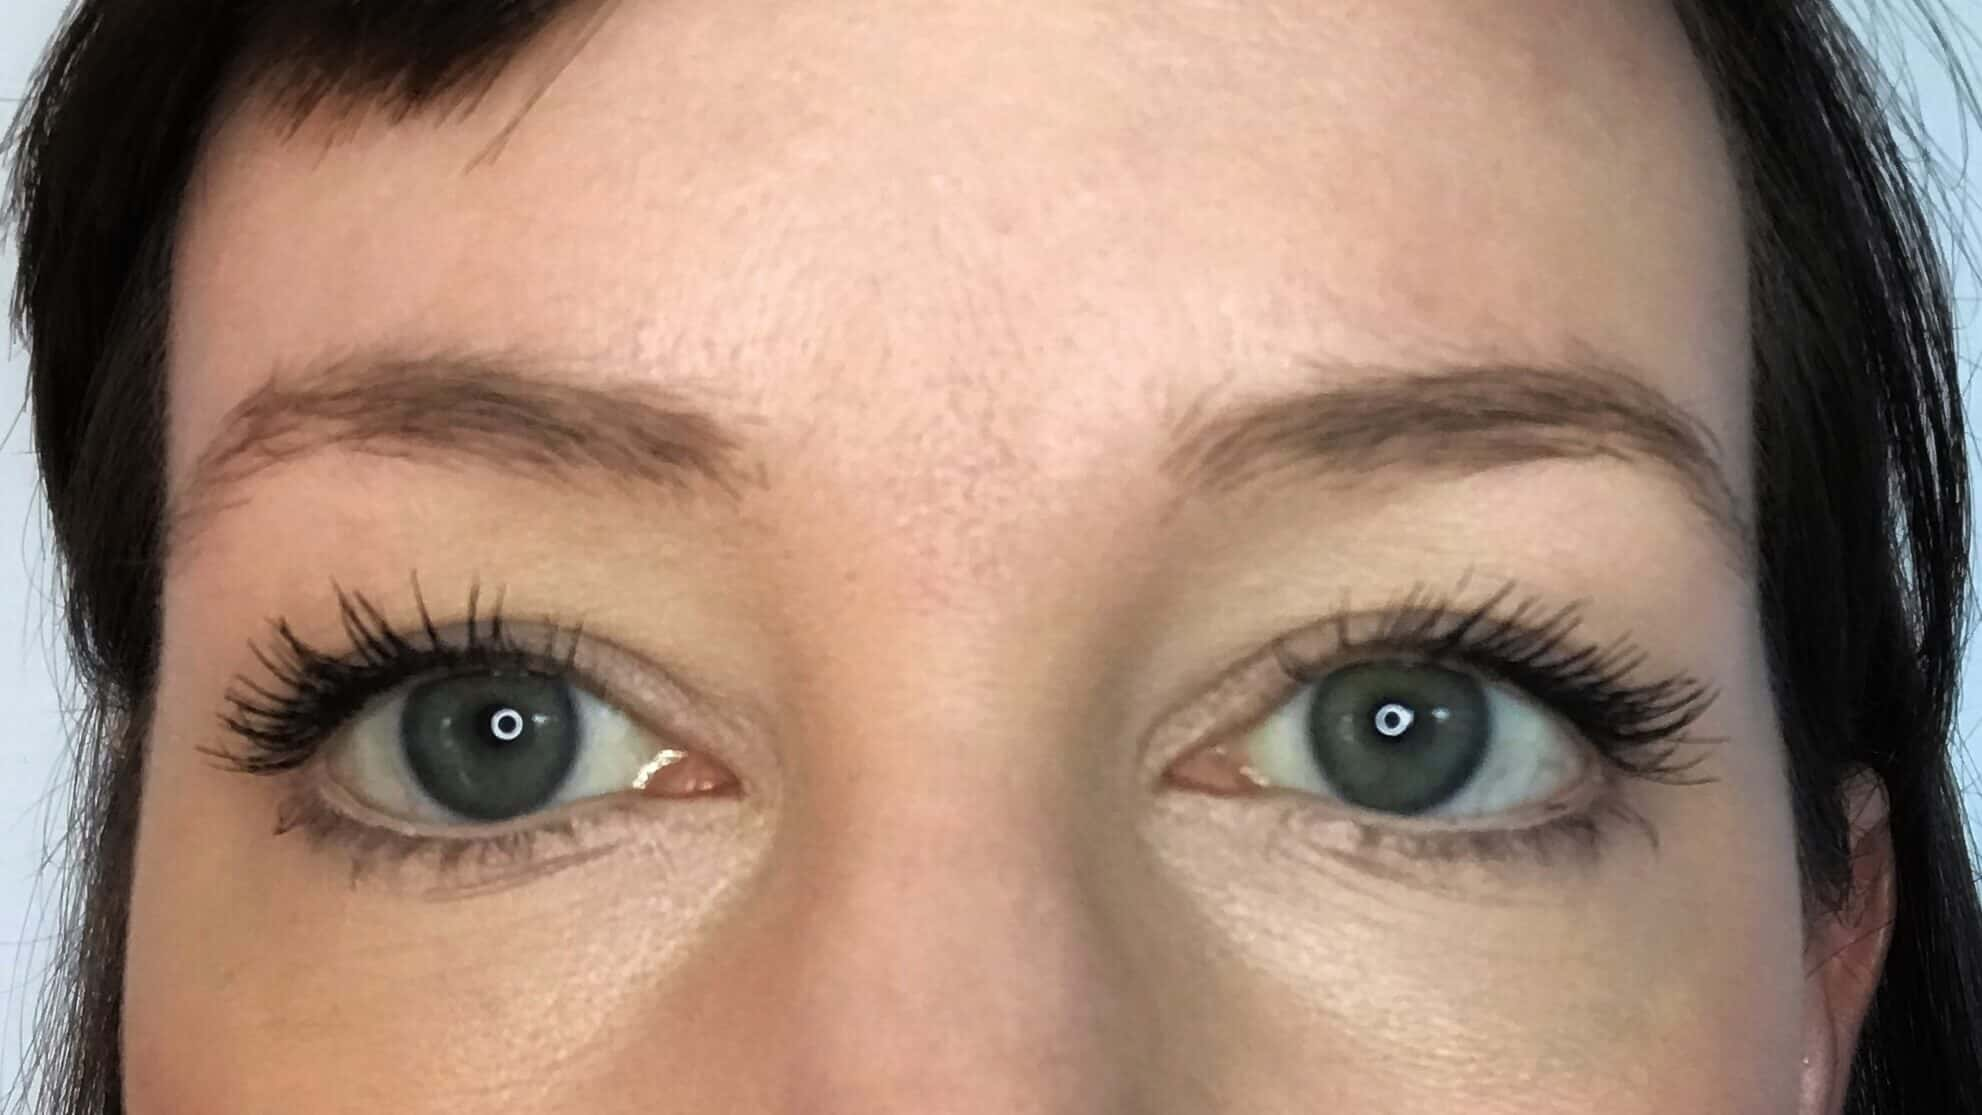 Naked eyebrows before make-up to make them look fuller